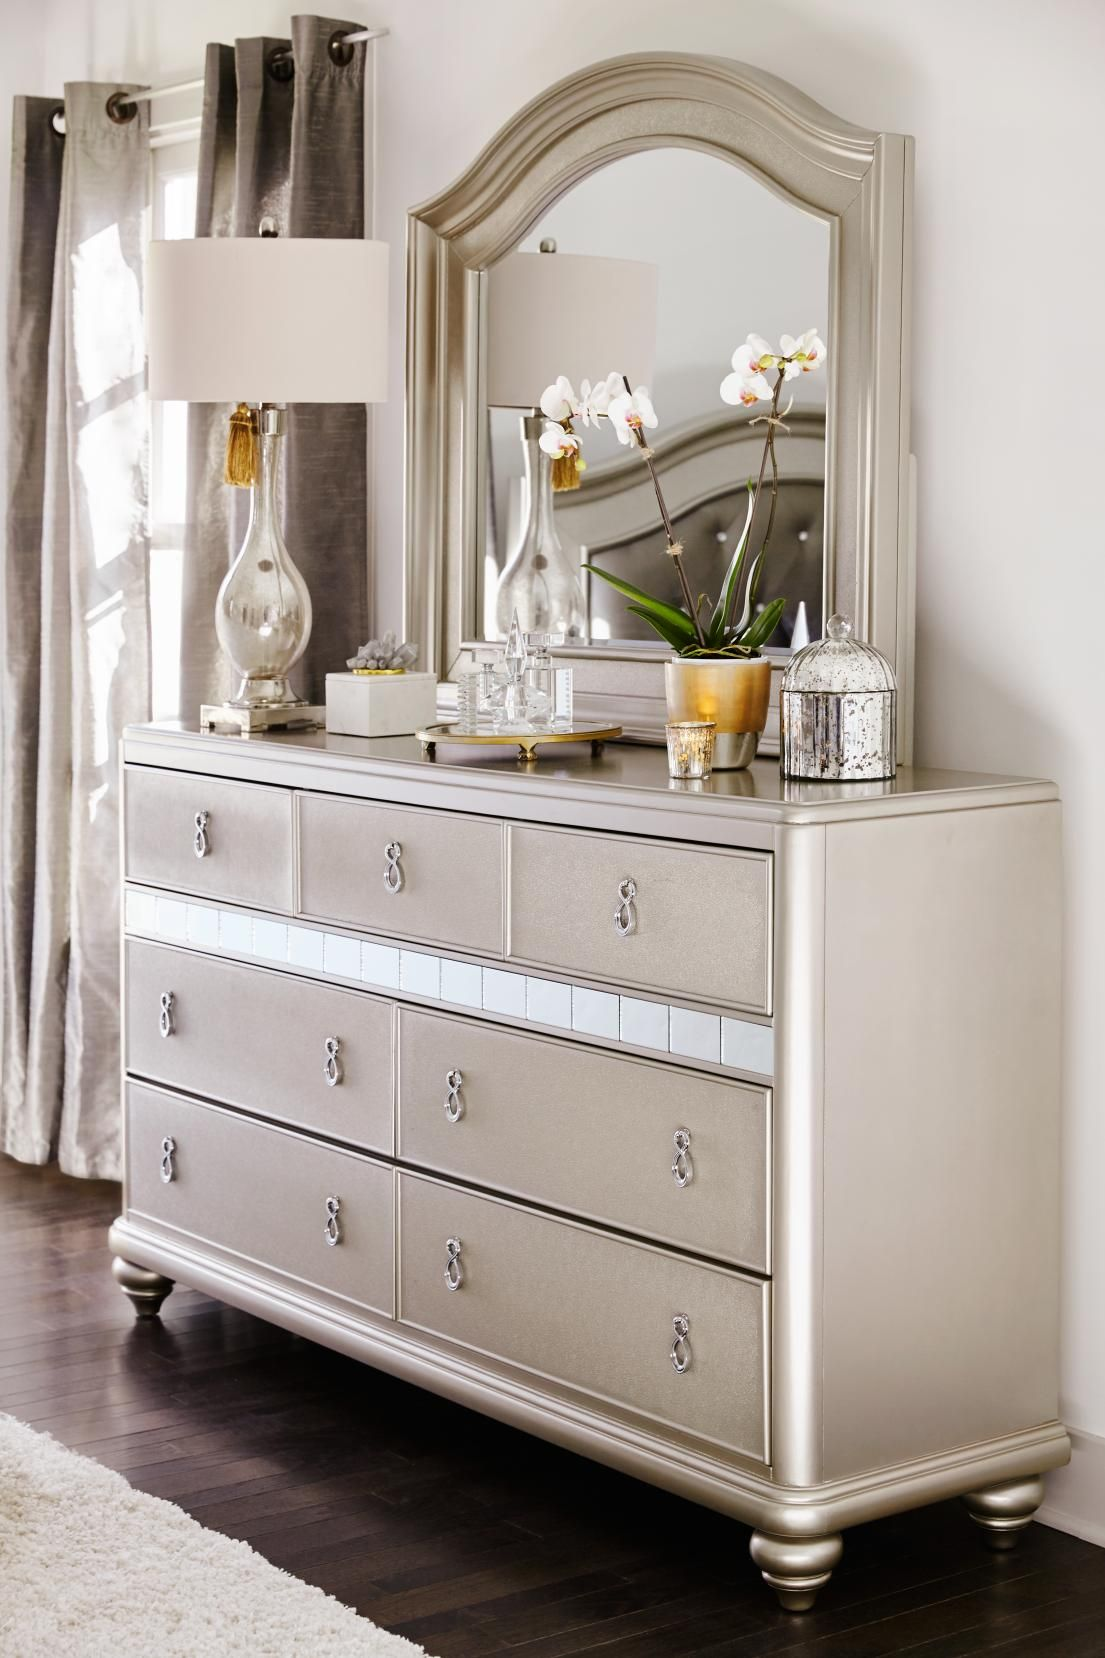 Super glam dresser with mirror from our Serena collection